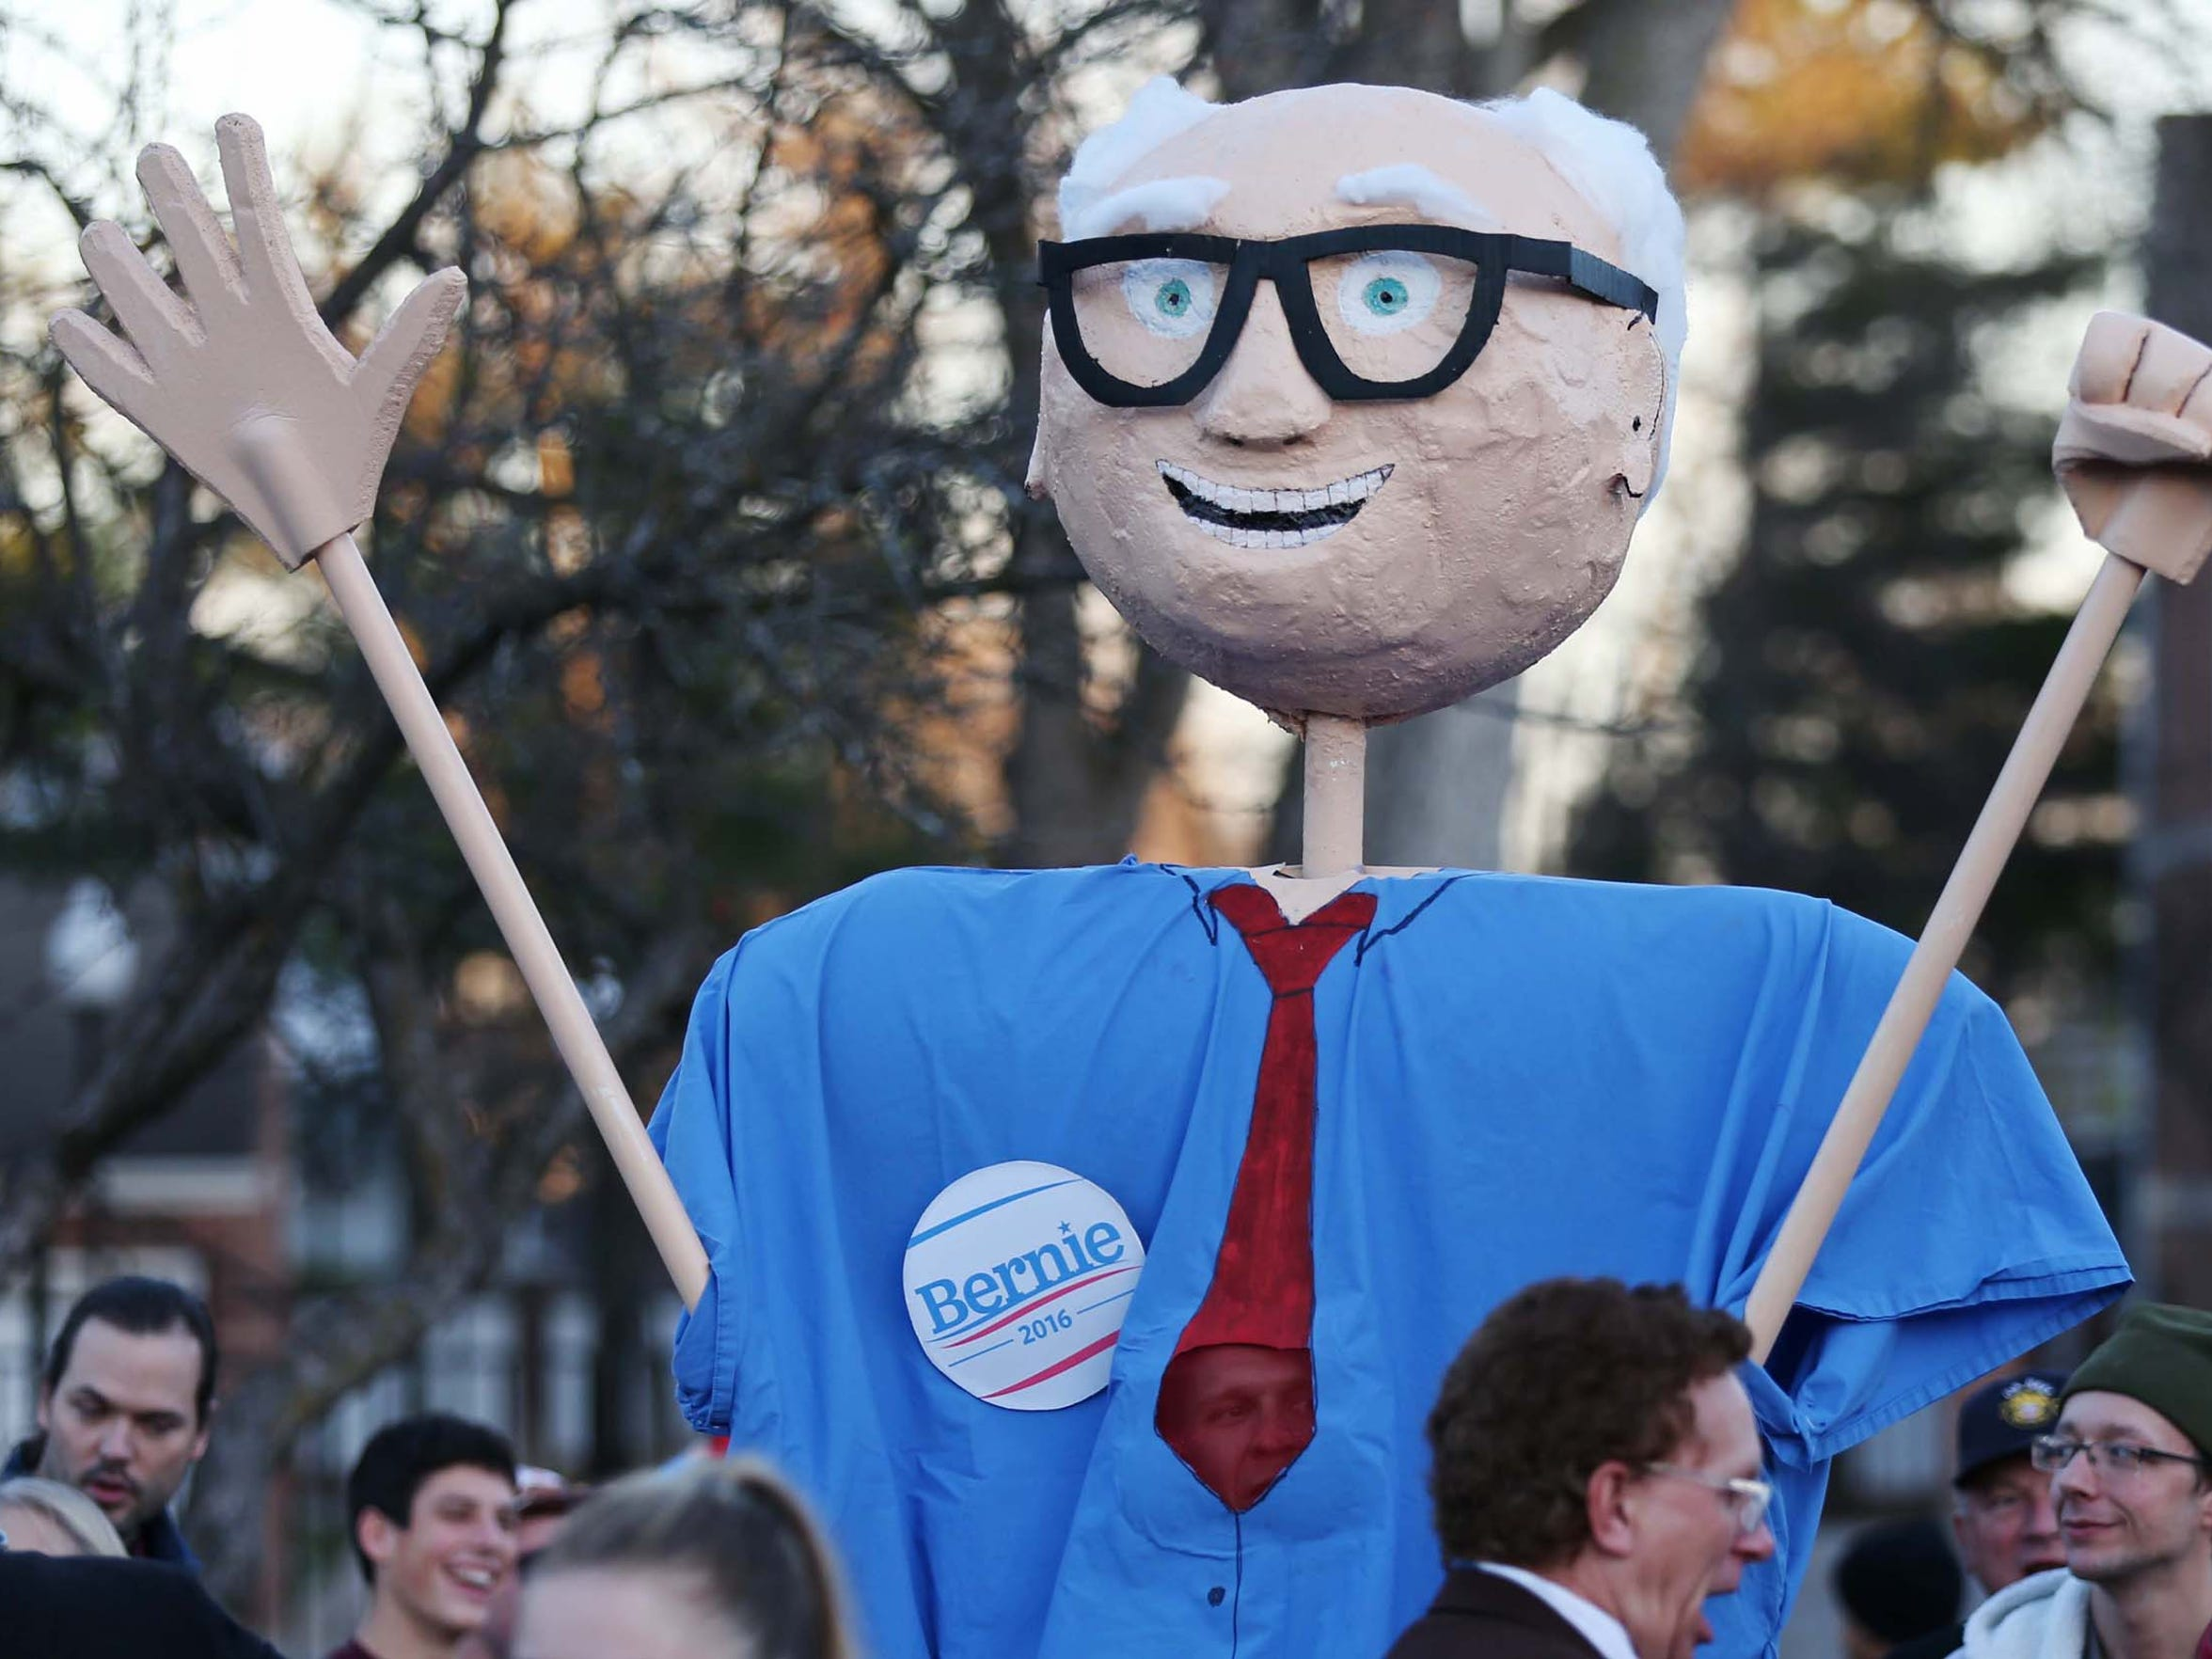 A man dressed as a larger-than-life Bernie Sanders attends a rally for the presidential hopeful ahead of the Democratic Debate on Saturday, Nov. 14, 2015, in Des Moines.